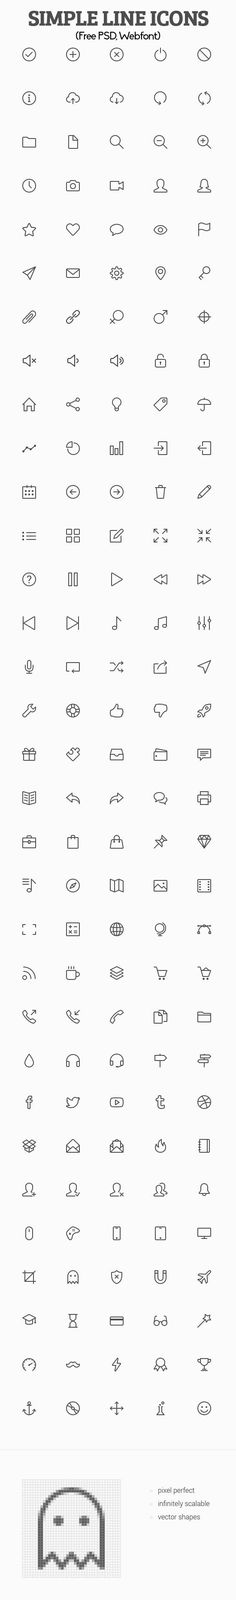 Simple Line Icons (Free PSD, Webfont):